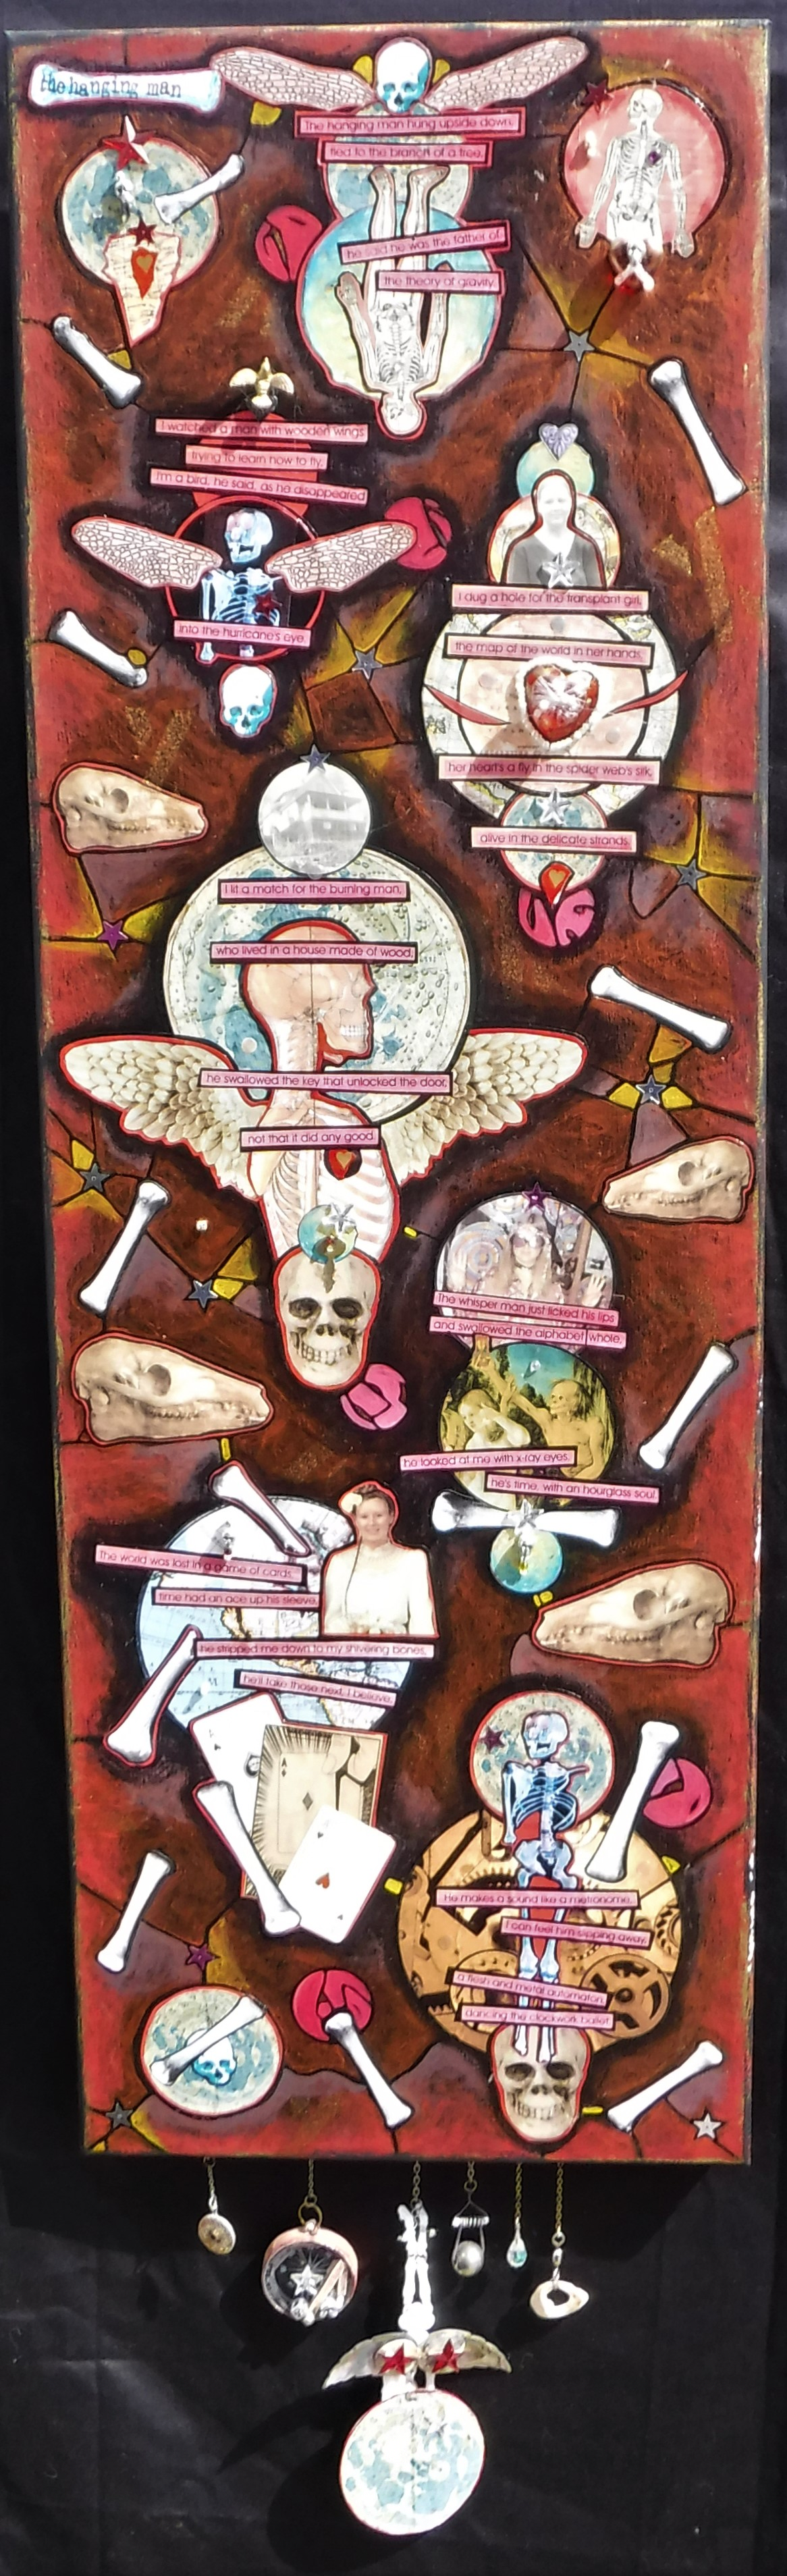 """the hanging man"" - mixed-media collage on canvas, acrylic paint, found altered objects, text."